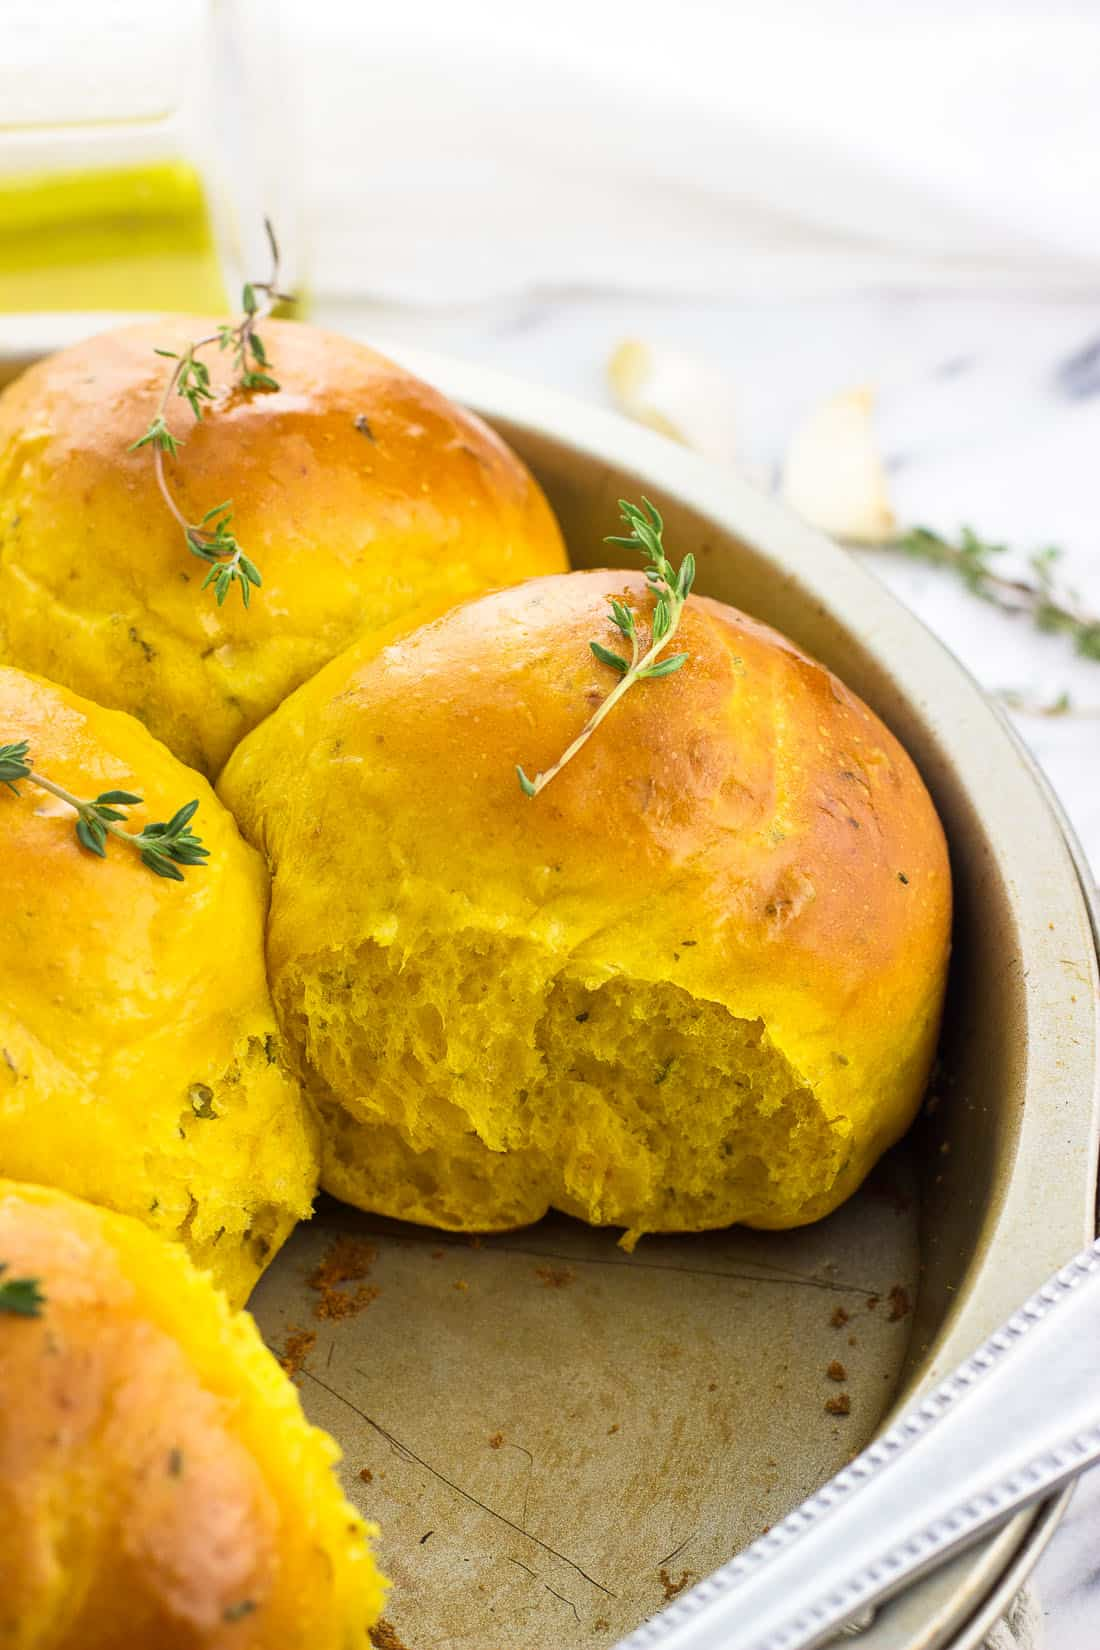 Garlic and herb pumpkin dinner rolls are perfectly flaky and fluffy, and make the best addition to a fall dinner. These pull-apart, yeast-based rolls are flavored with garlic and fresh herbs and are easy to make.